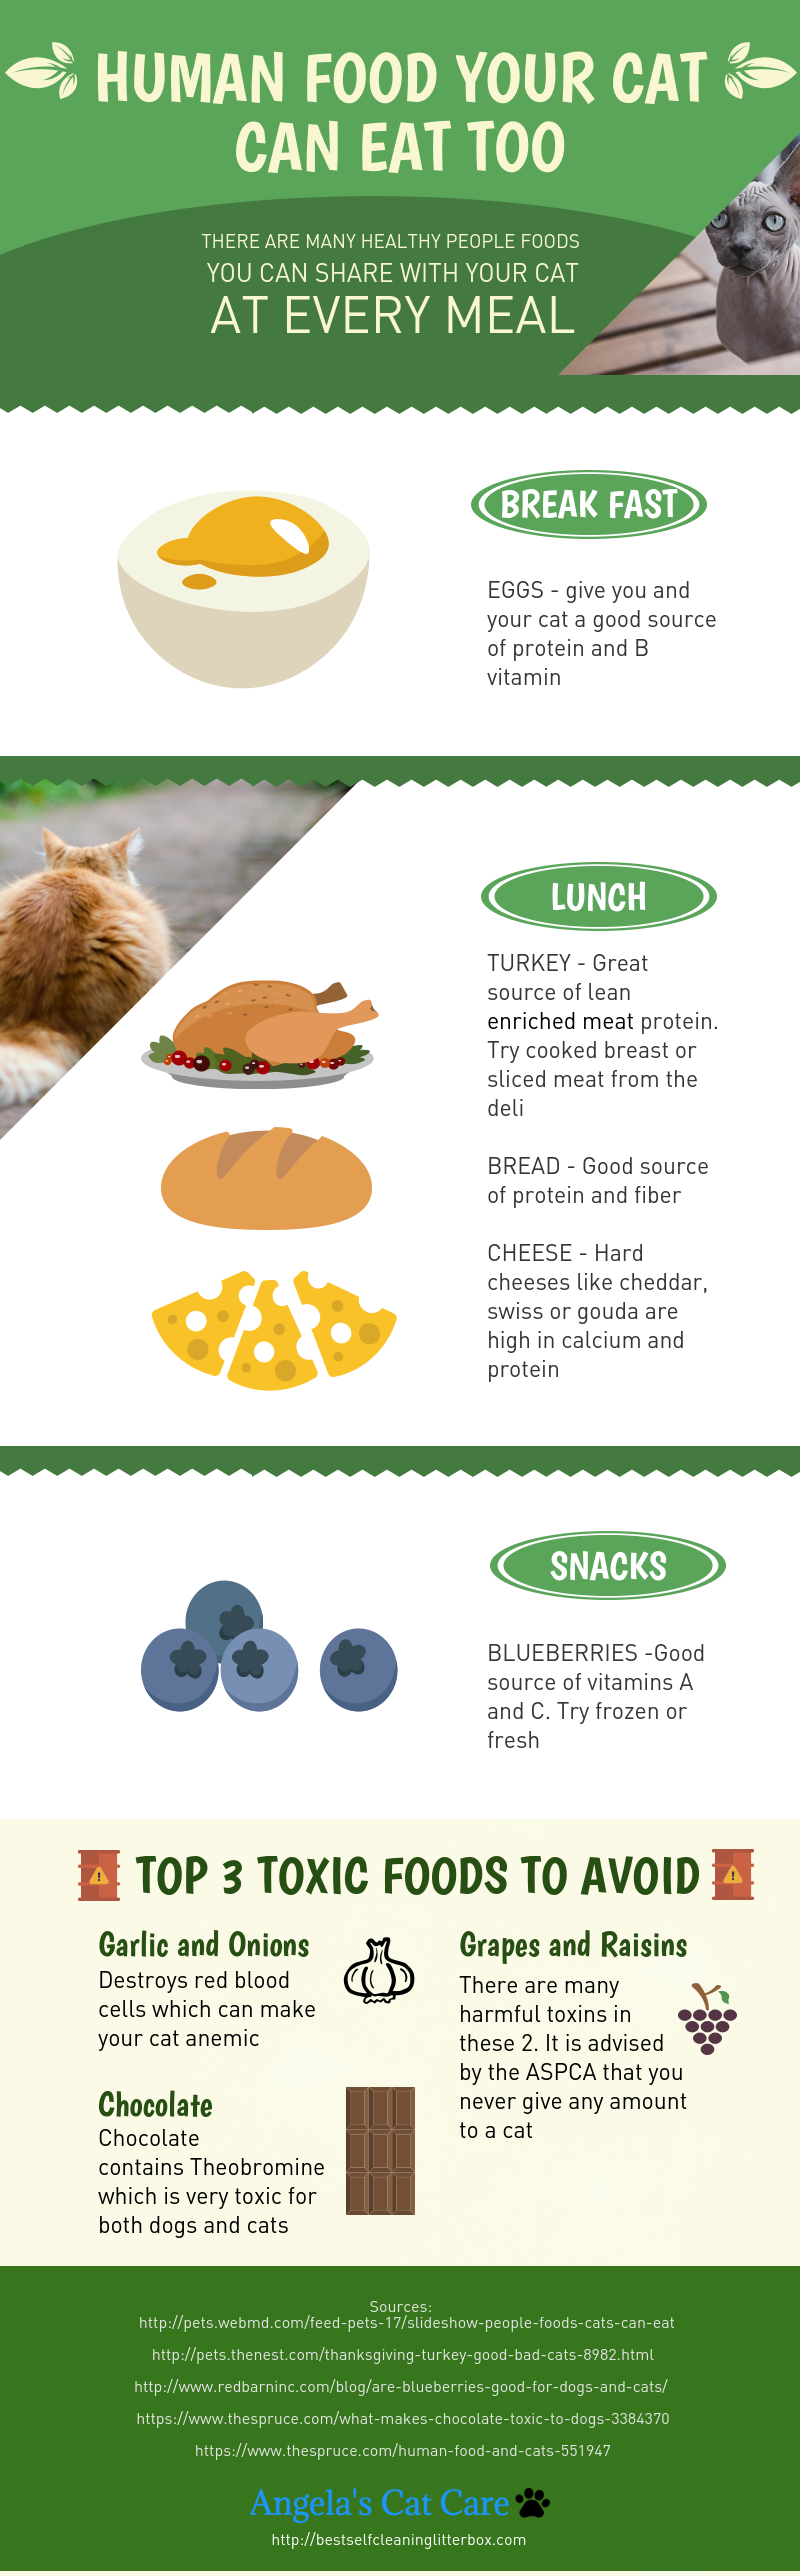 what human food can cats eat?